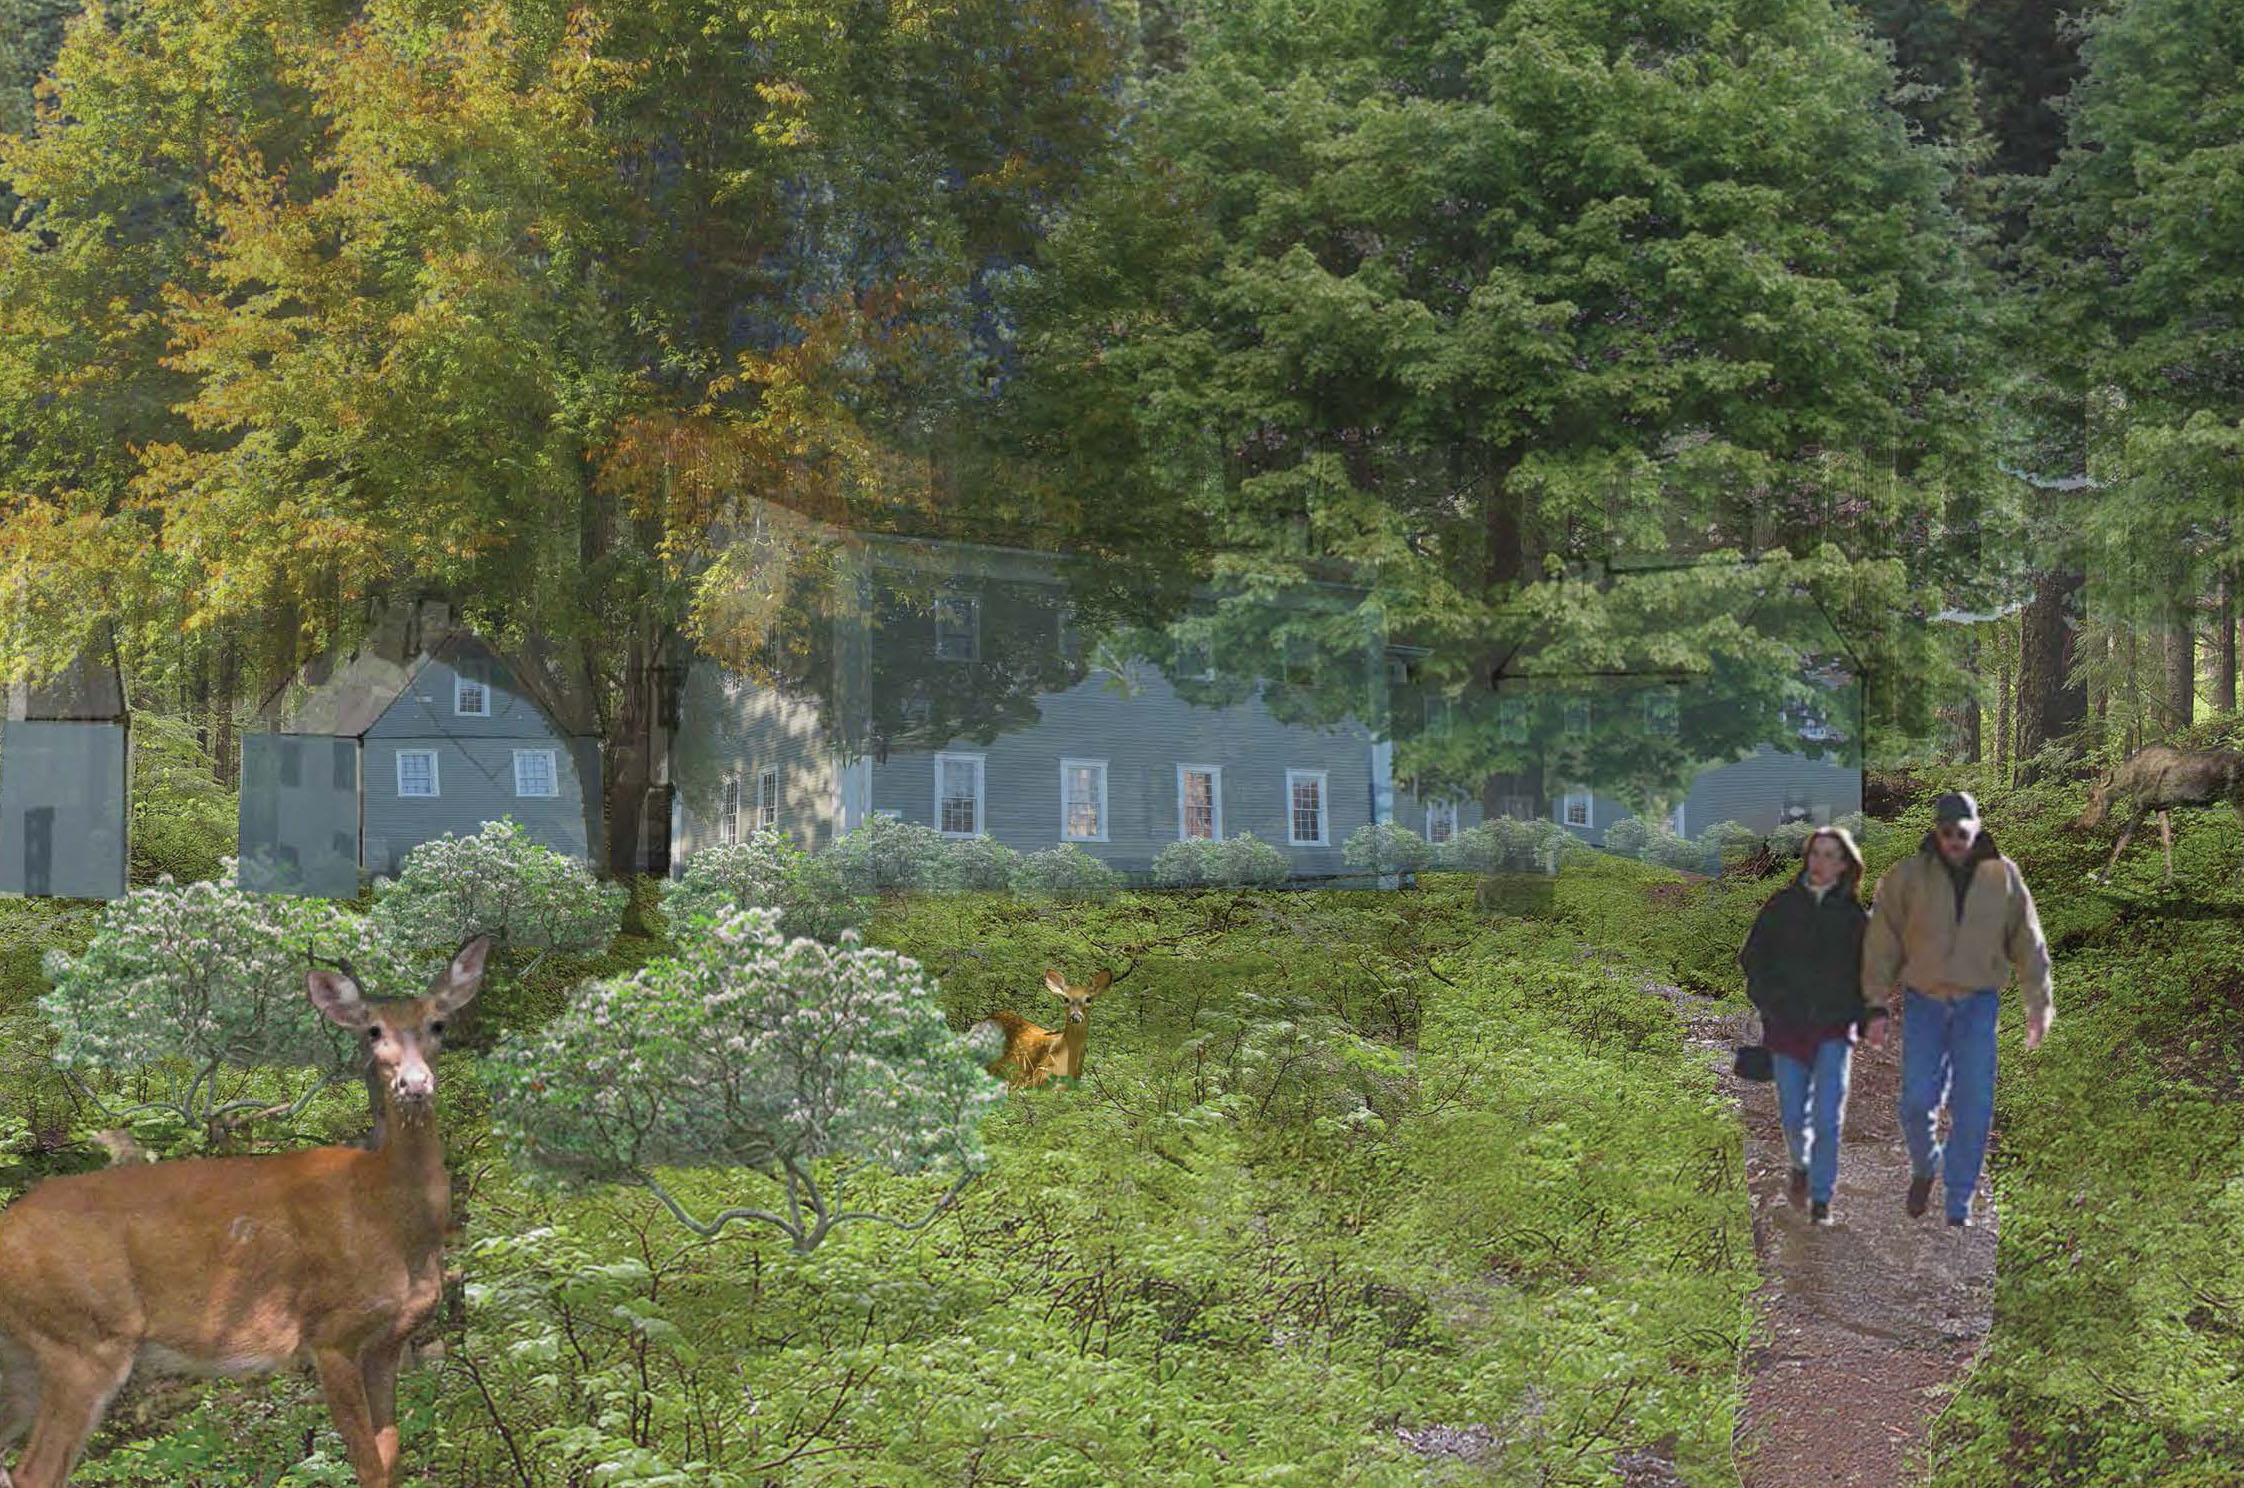 Site Planning for Fieldstone Farm, Princeton, MA - View From Shrubland Into Forested Housing - KEITH HANNON